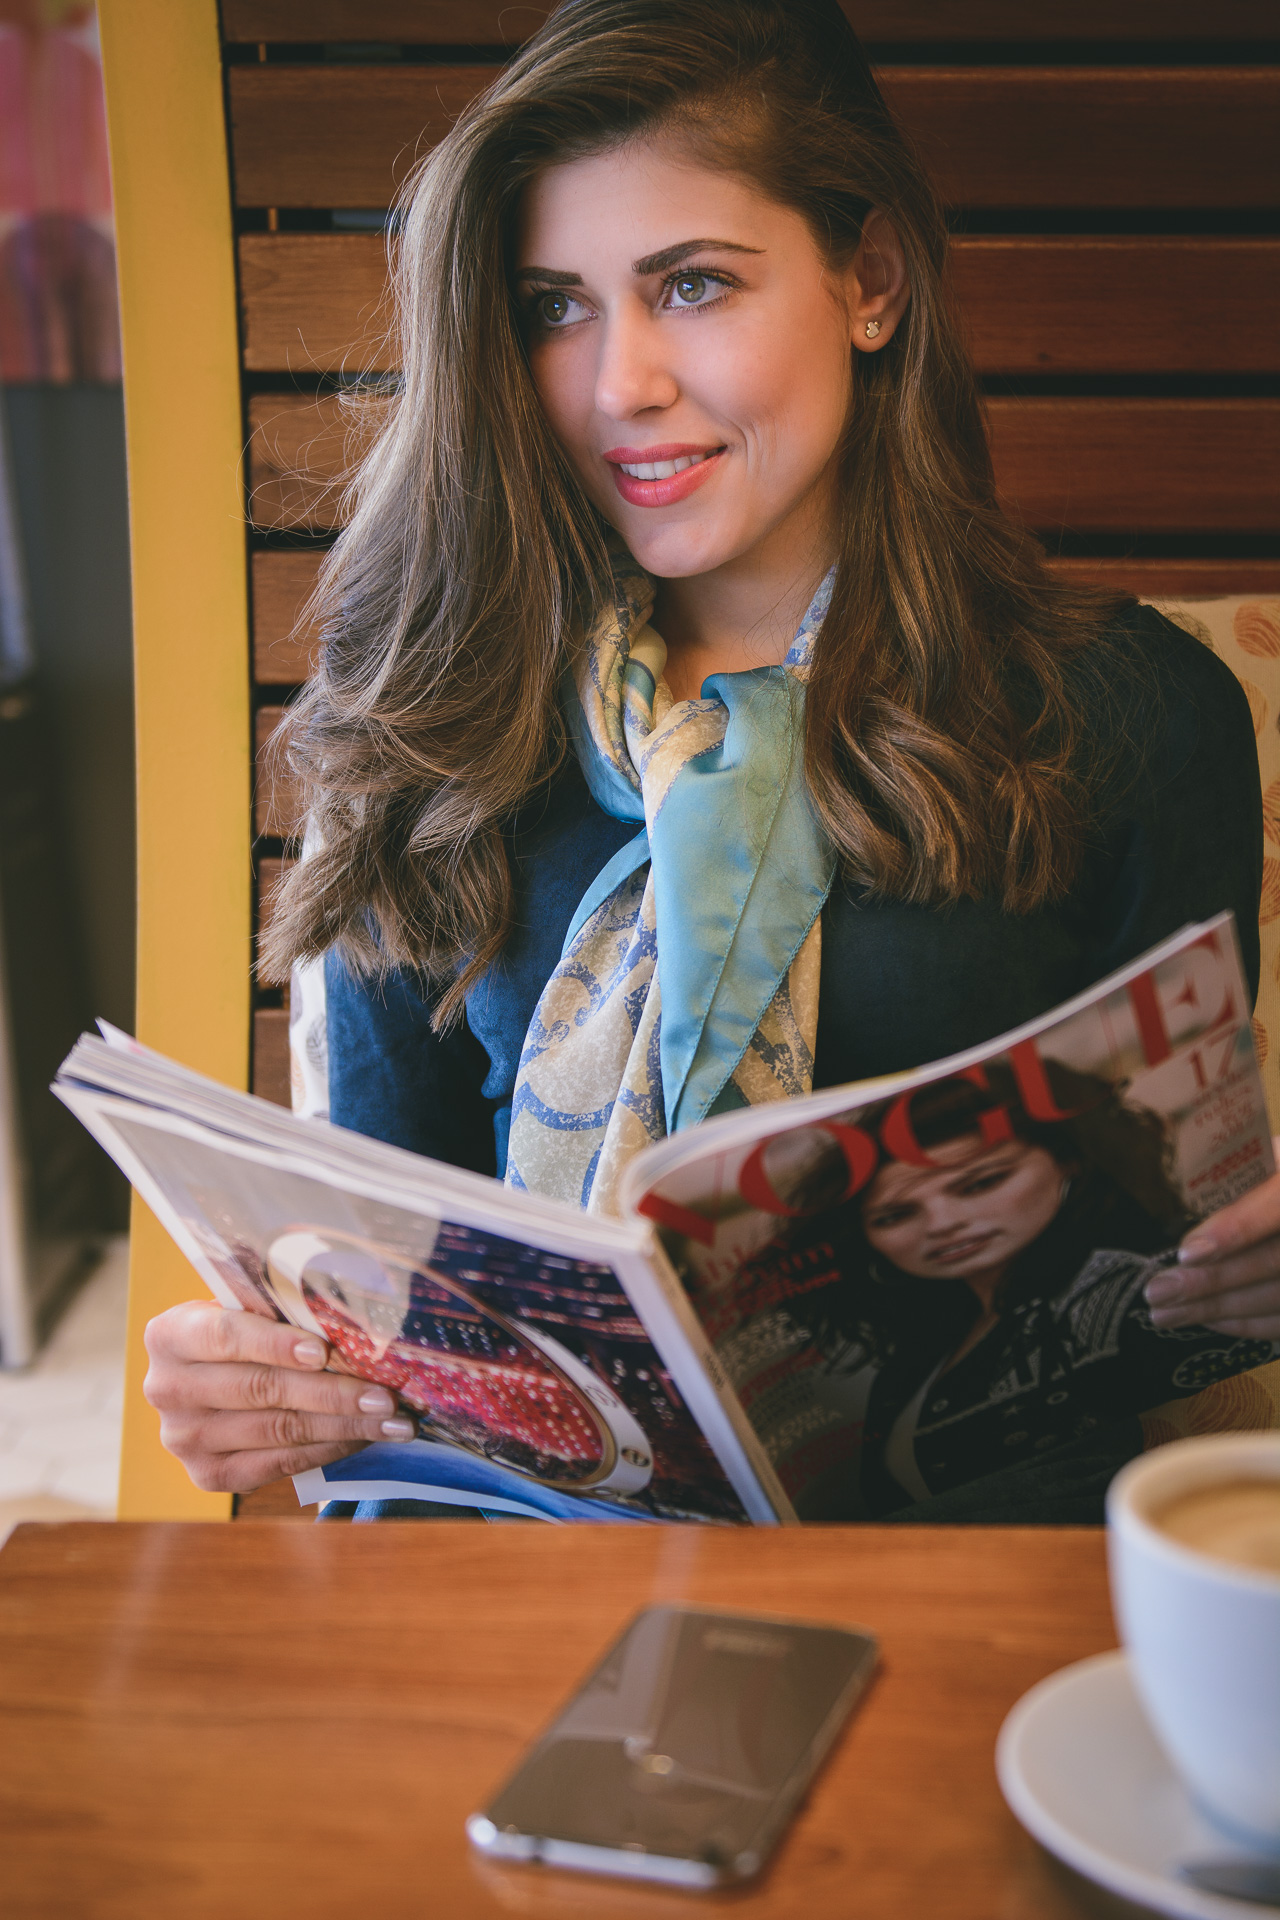 Coffee time browsing Vogue